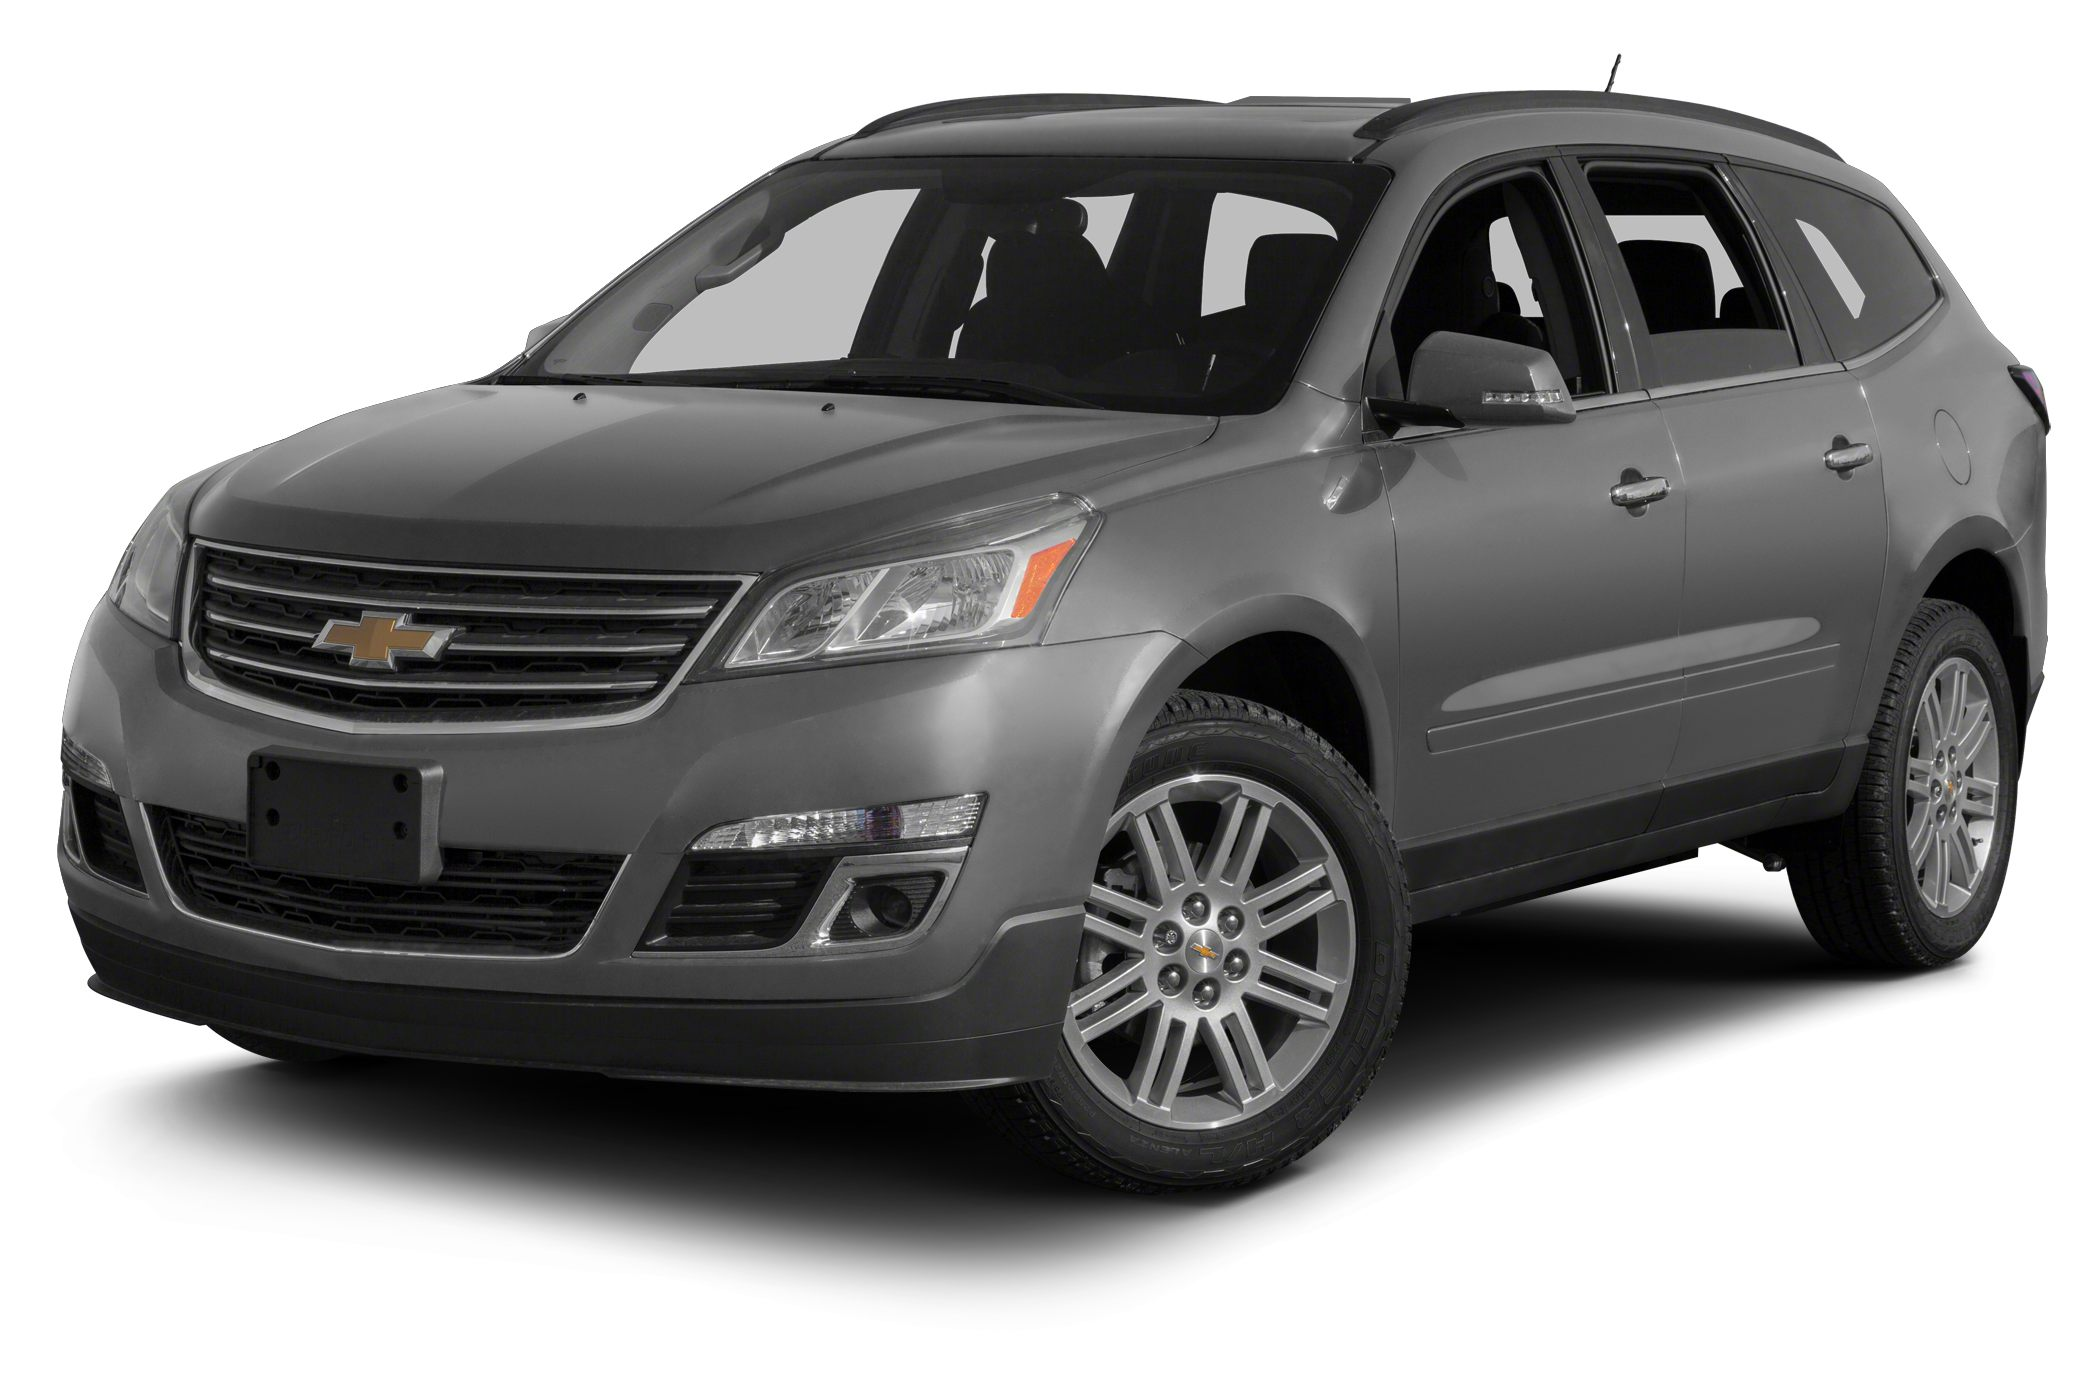 2013 Chevrolet Traverse 1LT SUV for sale in Lancaster for $24,661 with 47,084 miles